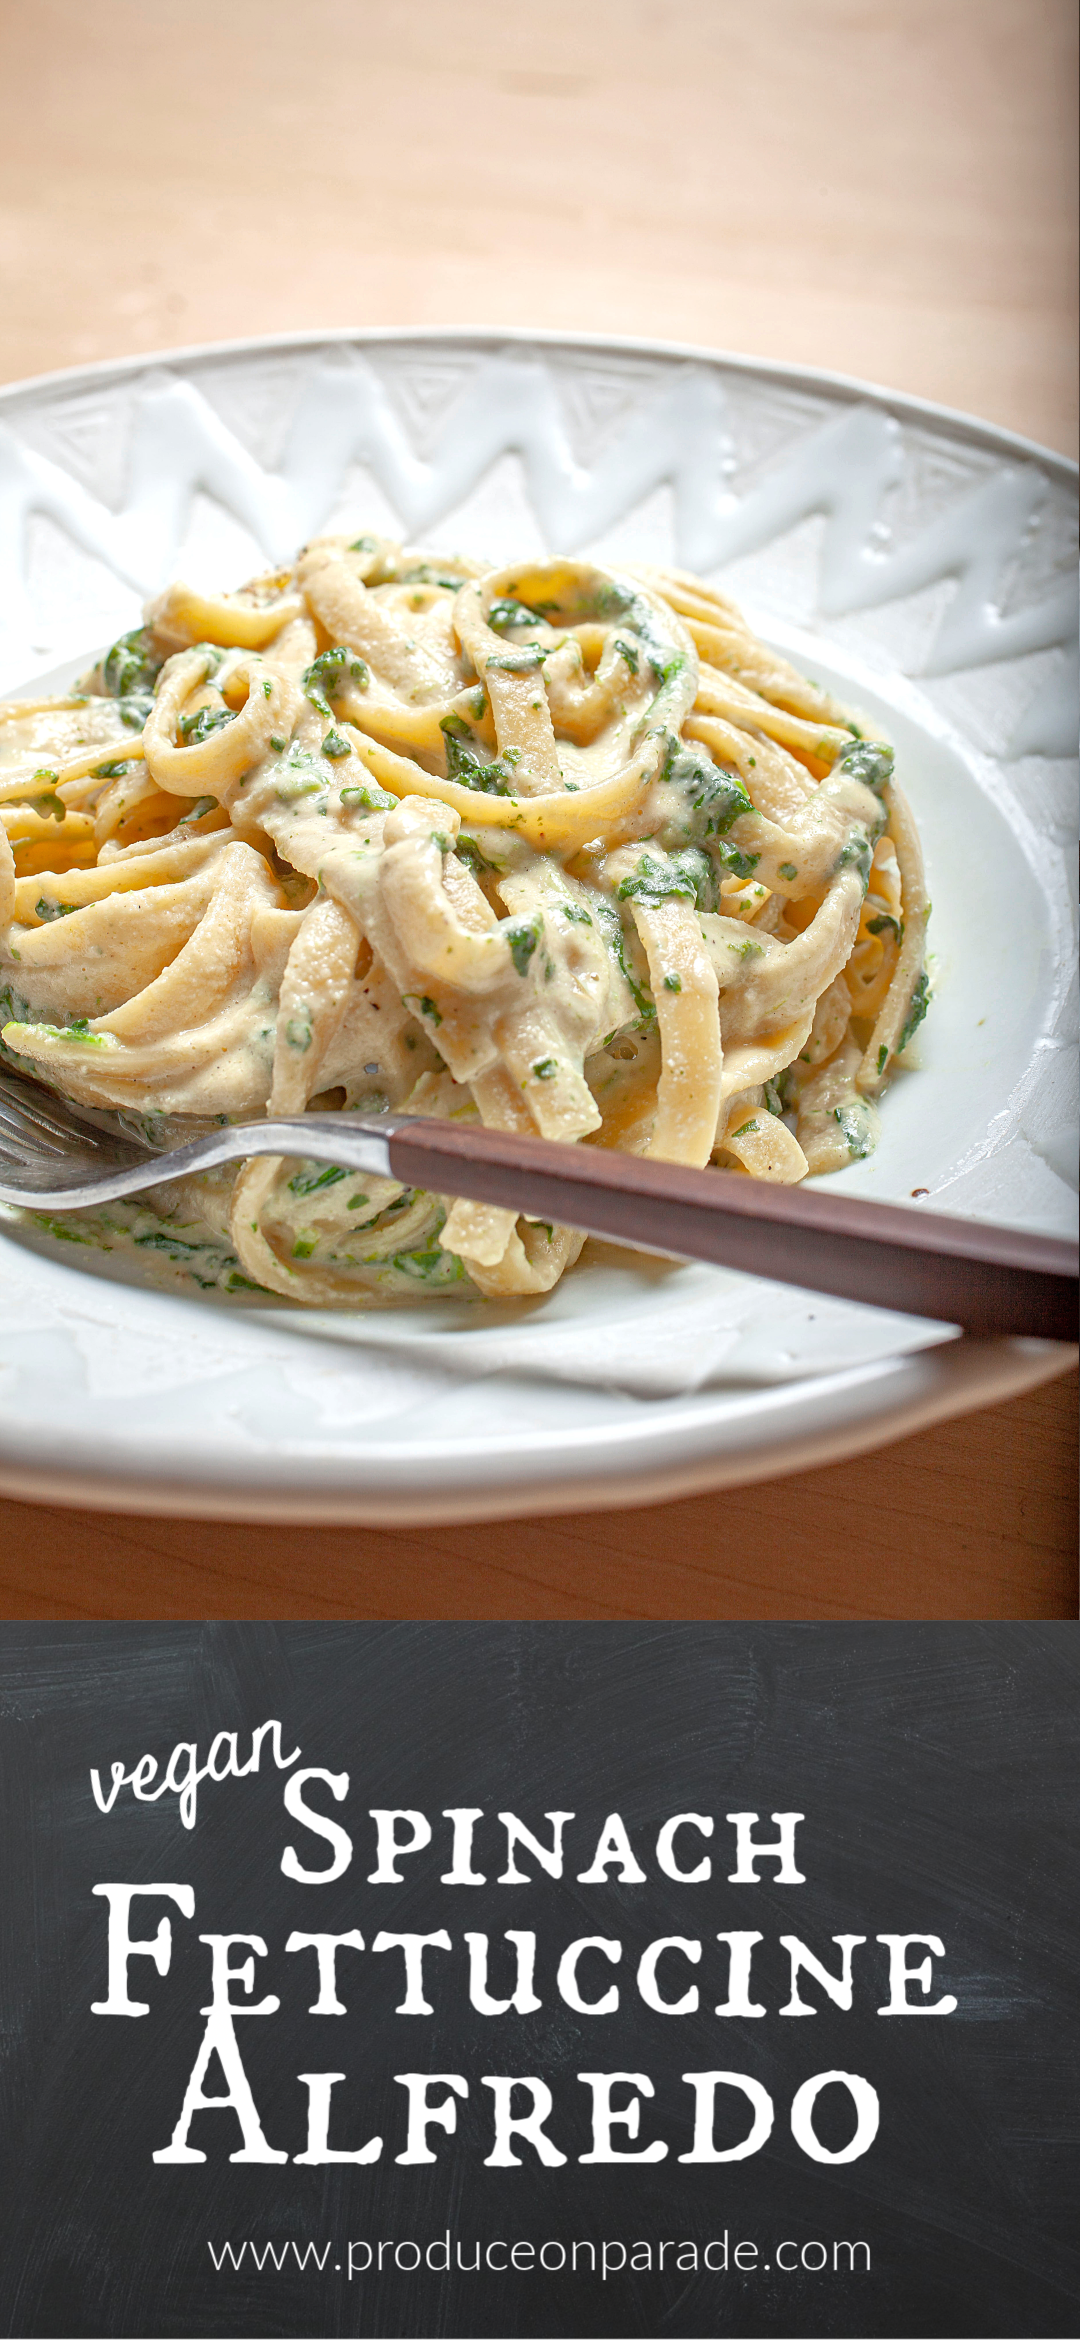 Vegan Spinach Fettuccine Alfredo - Produce On Parade - This is an easy and simple vegan spinach fettuccine alfredo made with a deliciously creamy cashew sauce. It's a healthy and light alternative to it's very rich counterparts made with cheese and heavy cream, but is still just as tasty!